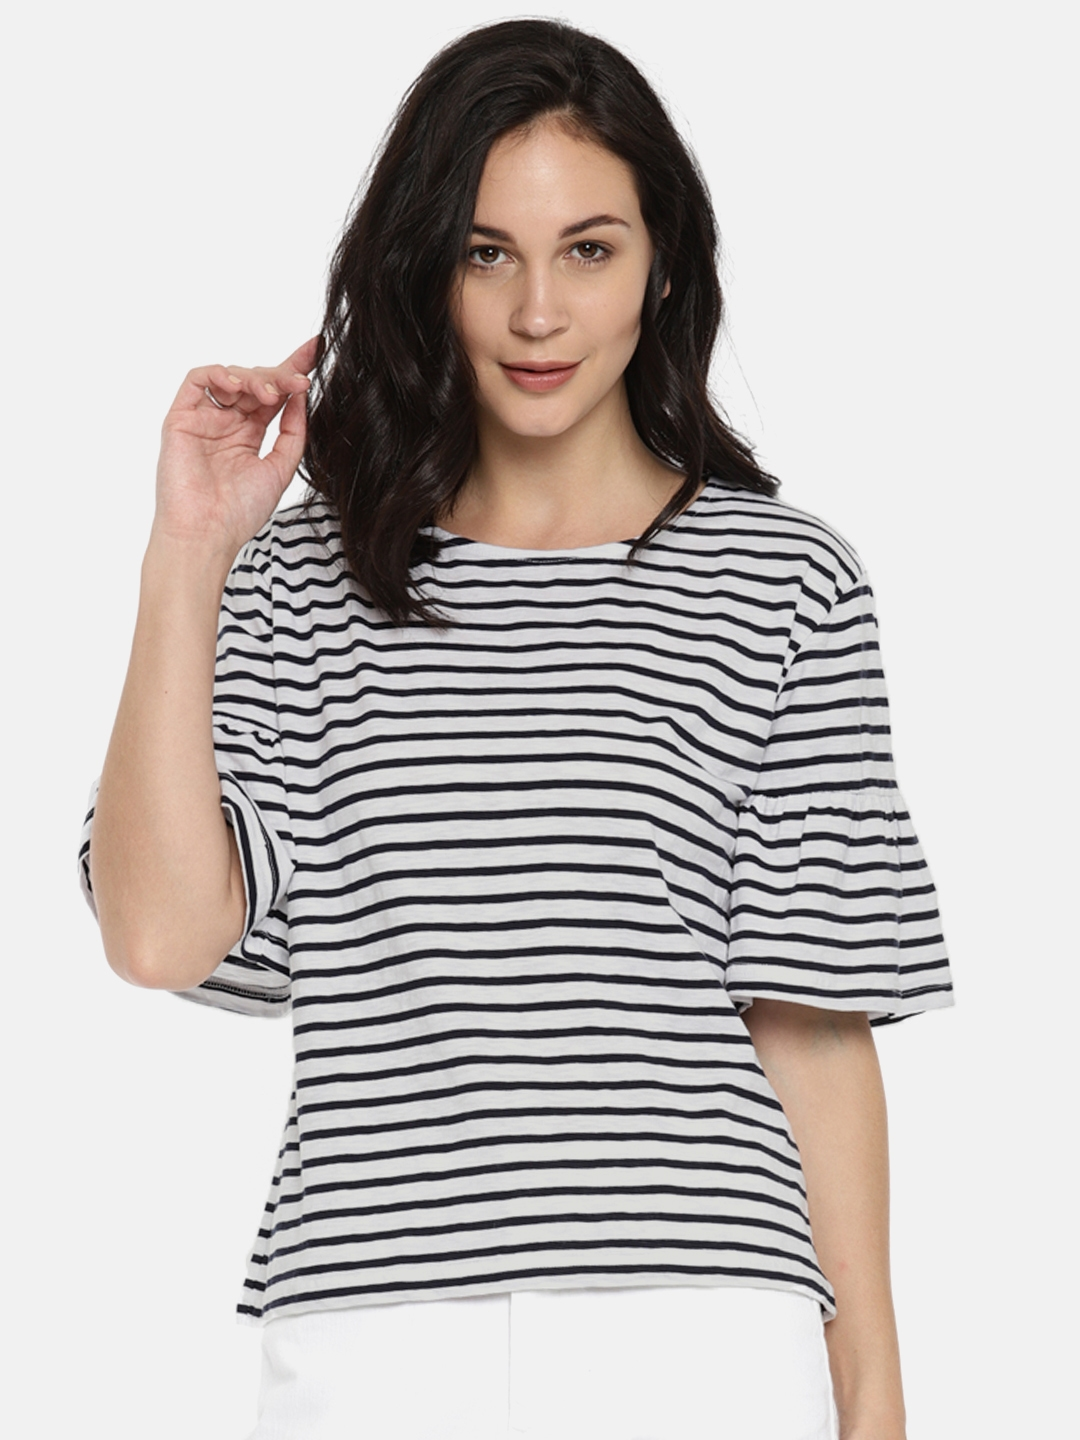 be5663ca1a7308 Buy Fame Forever By Lifestyle Women White & Navy Blue Striped Top ...